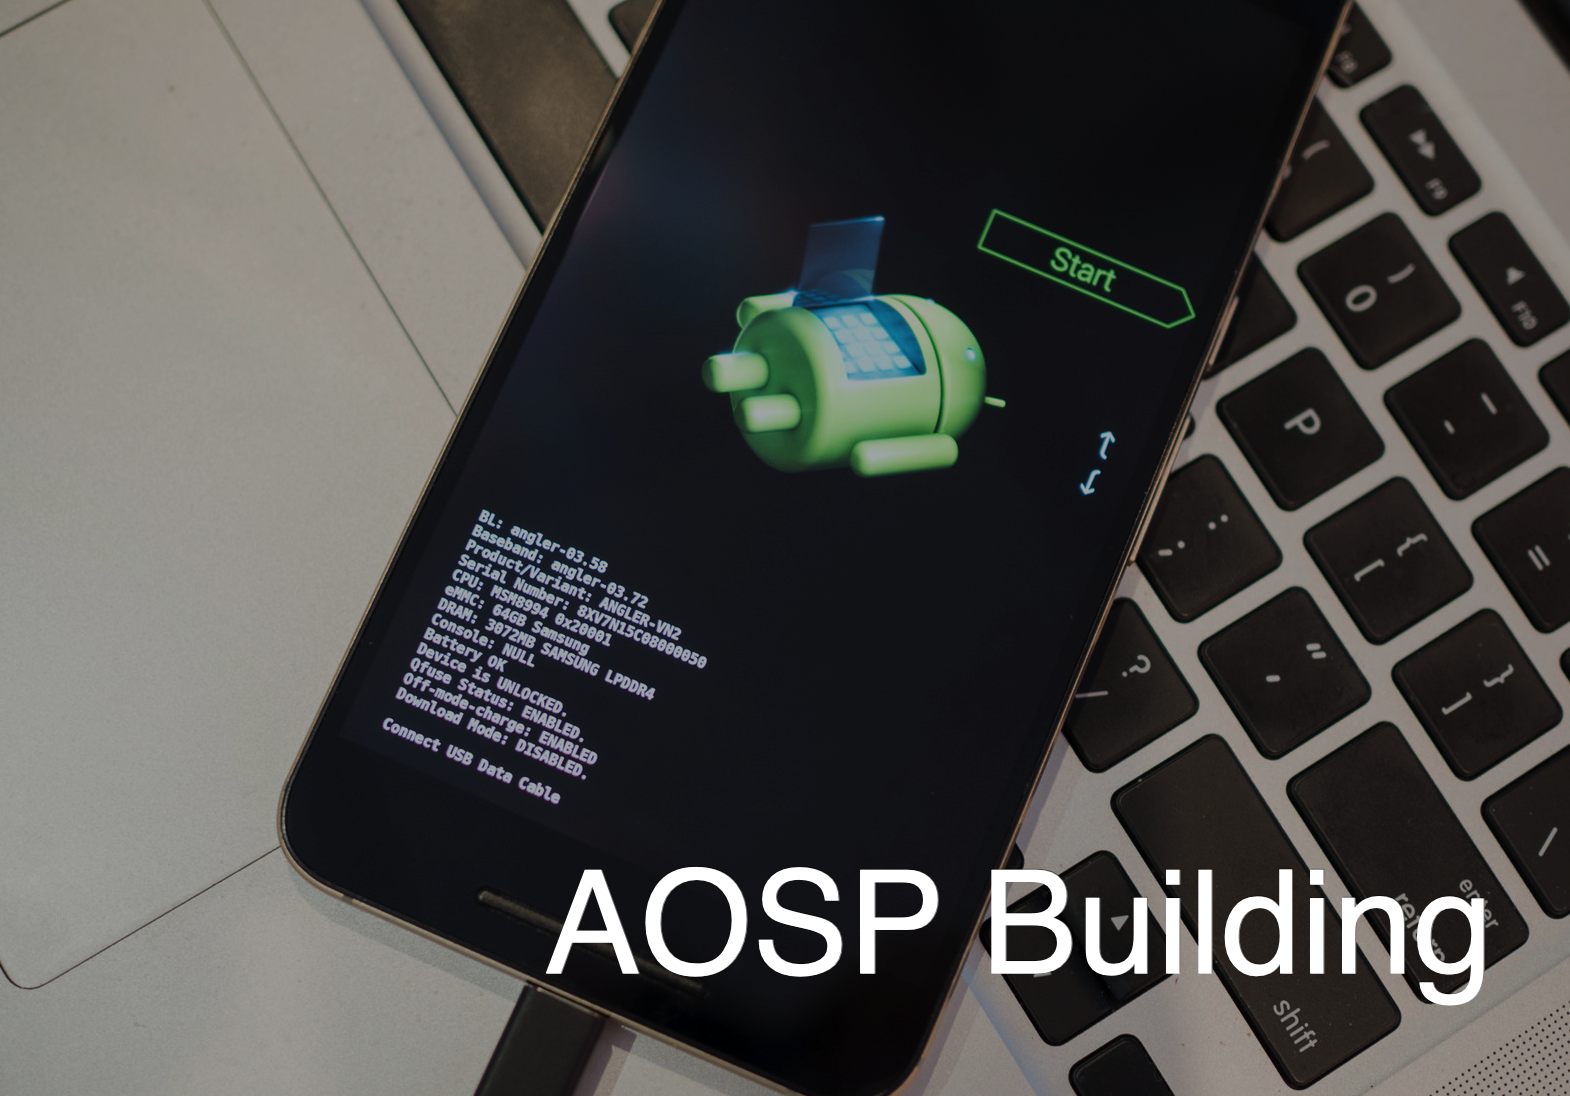 Building AOSP, fastbooting on a device - Soham Bhattacharya - Medium